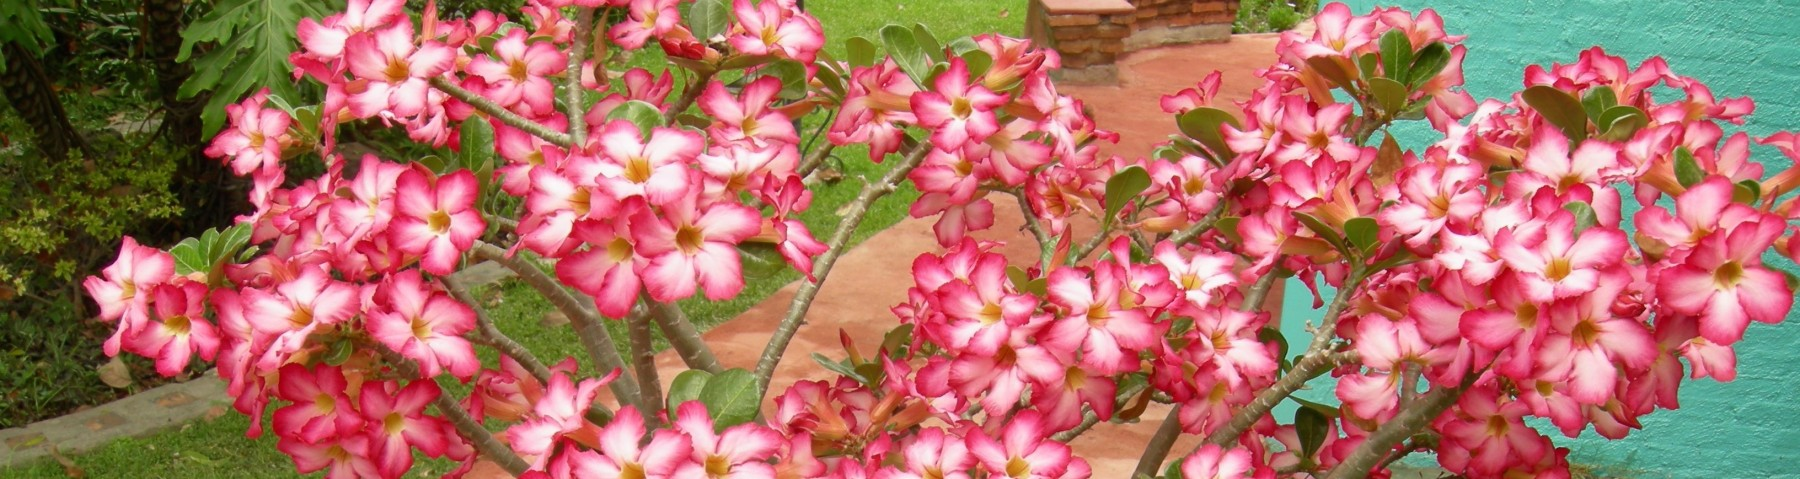 A good vegetable gardening tome says Canadian Gardening magazine. cropped desert rose jpg